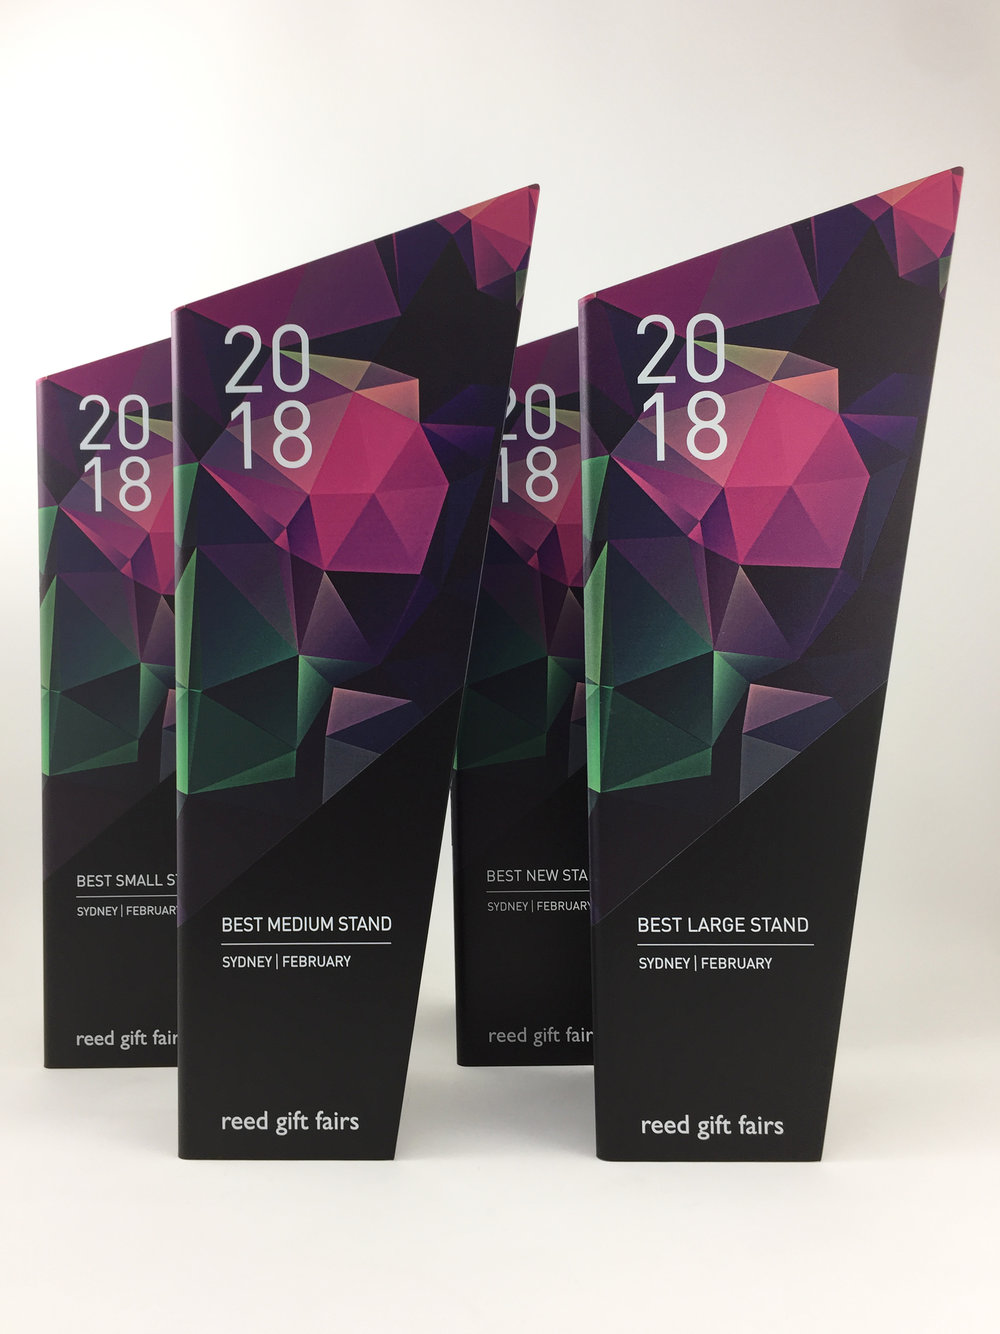 reed-gift-fairs-graphic-print-aluminium-trophy-award-06.jpg